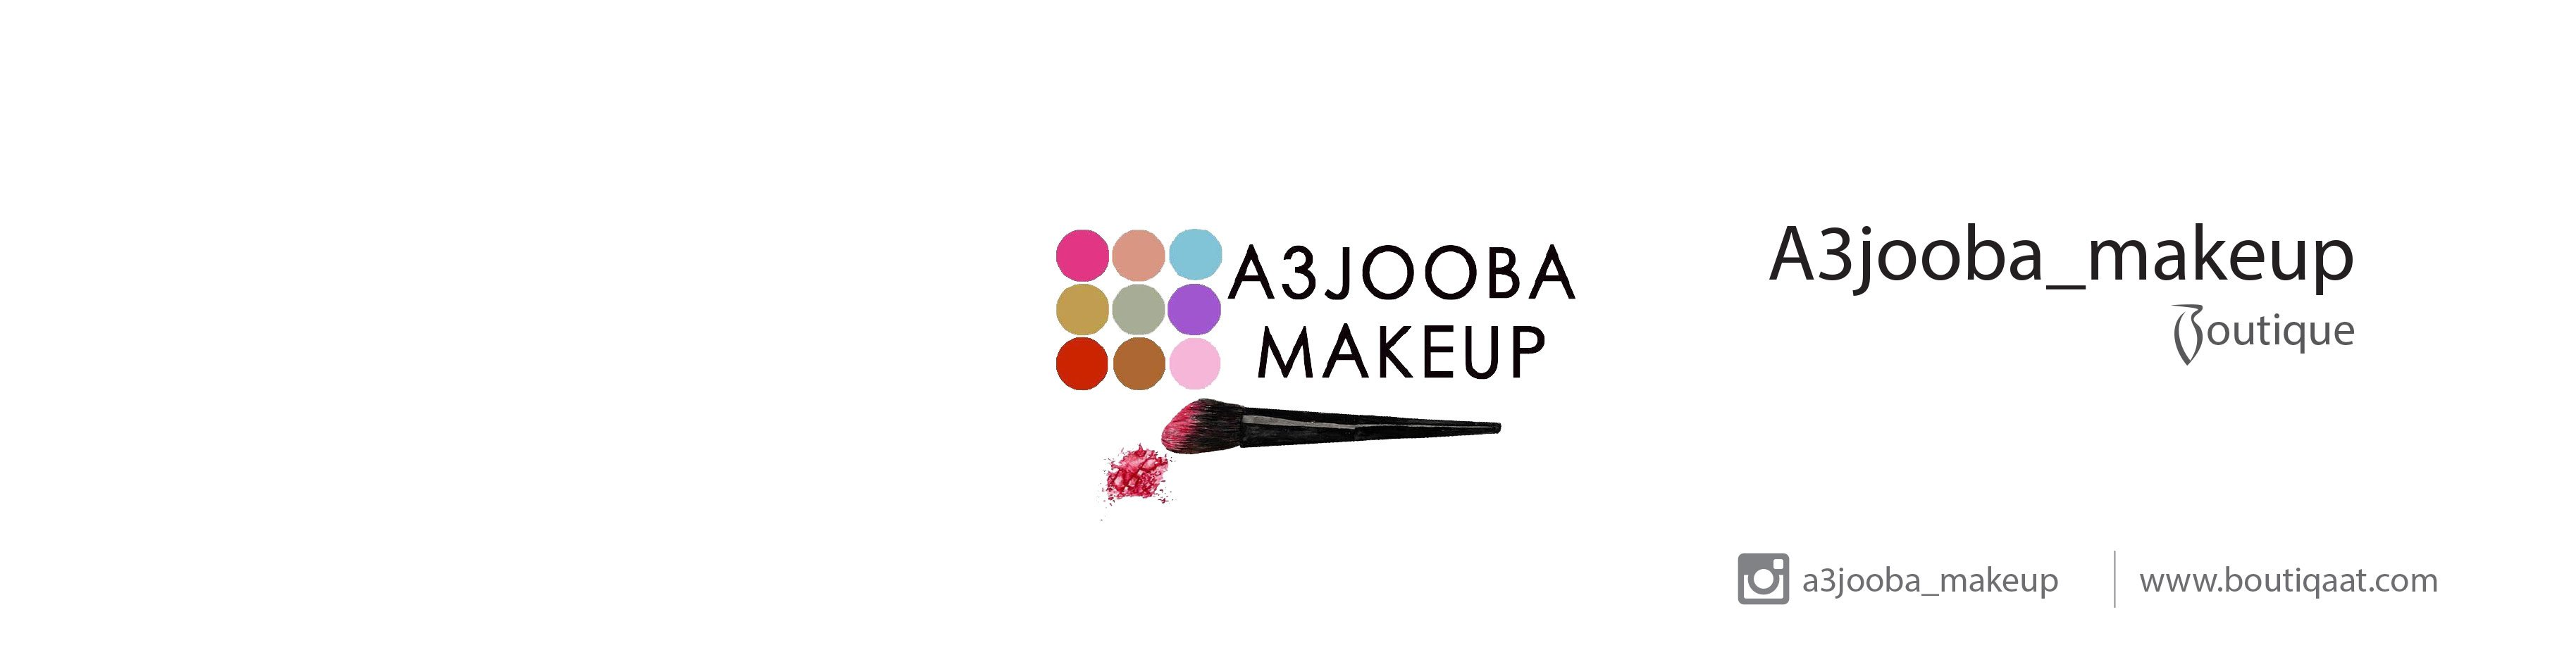 A3jooba Makeup Boutique